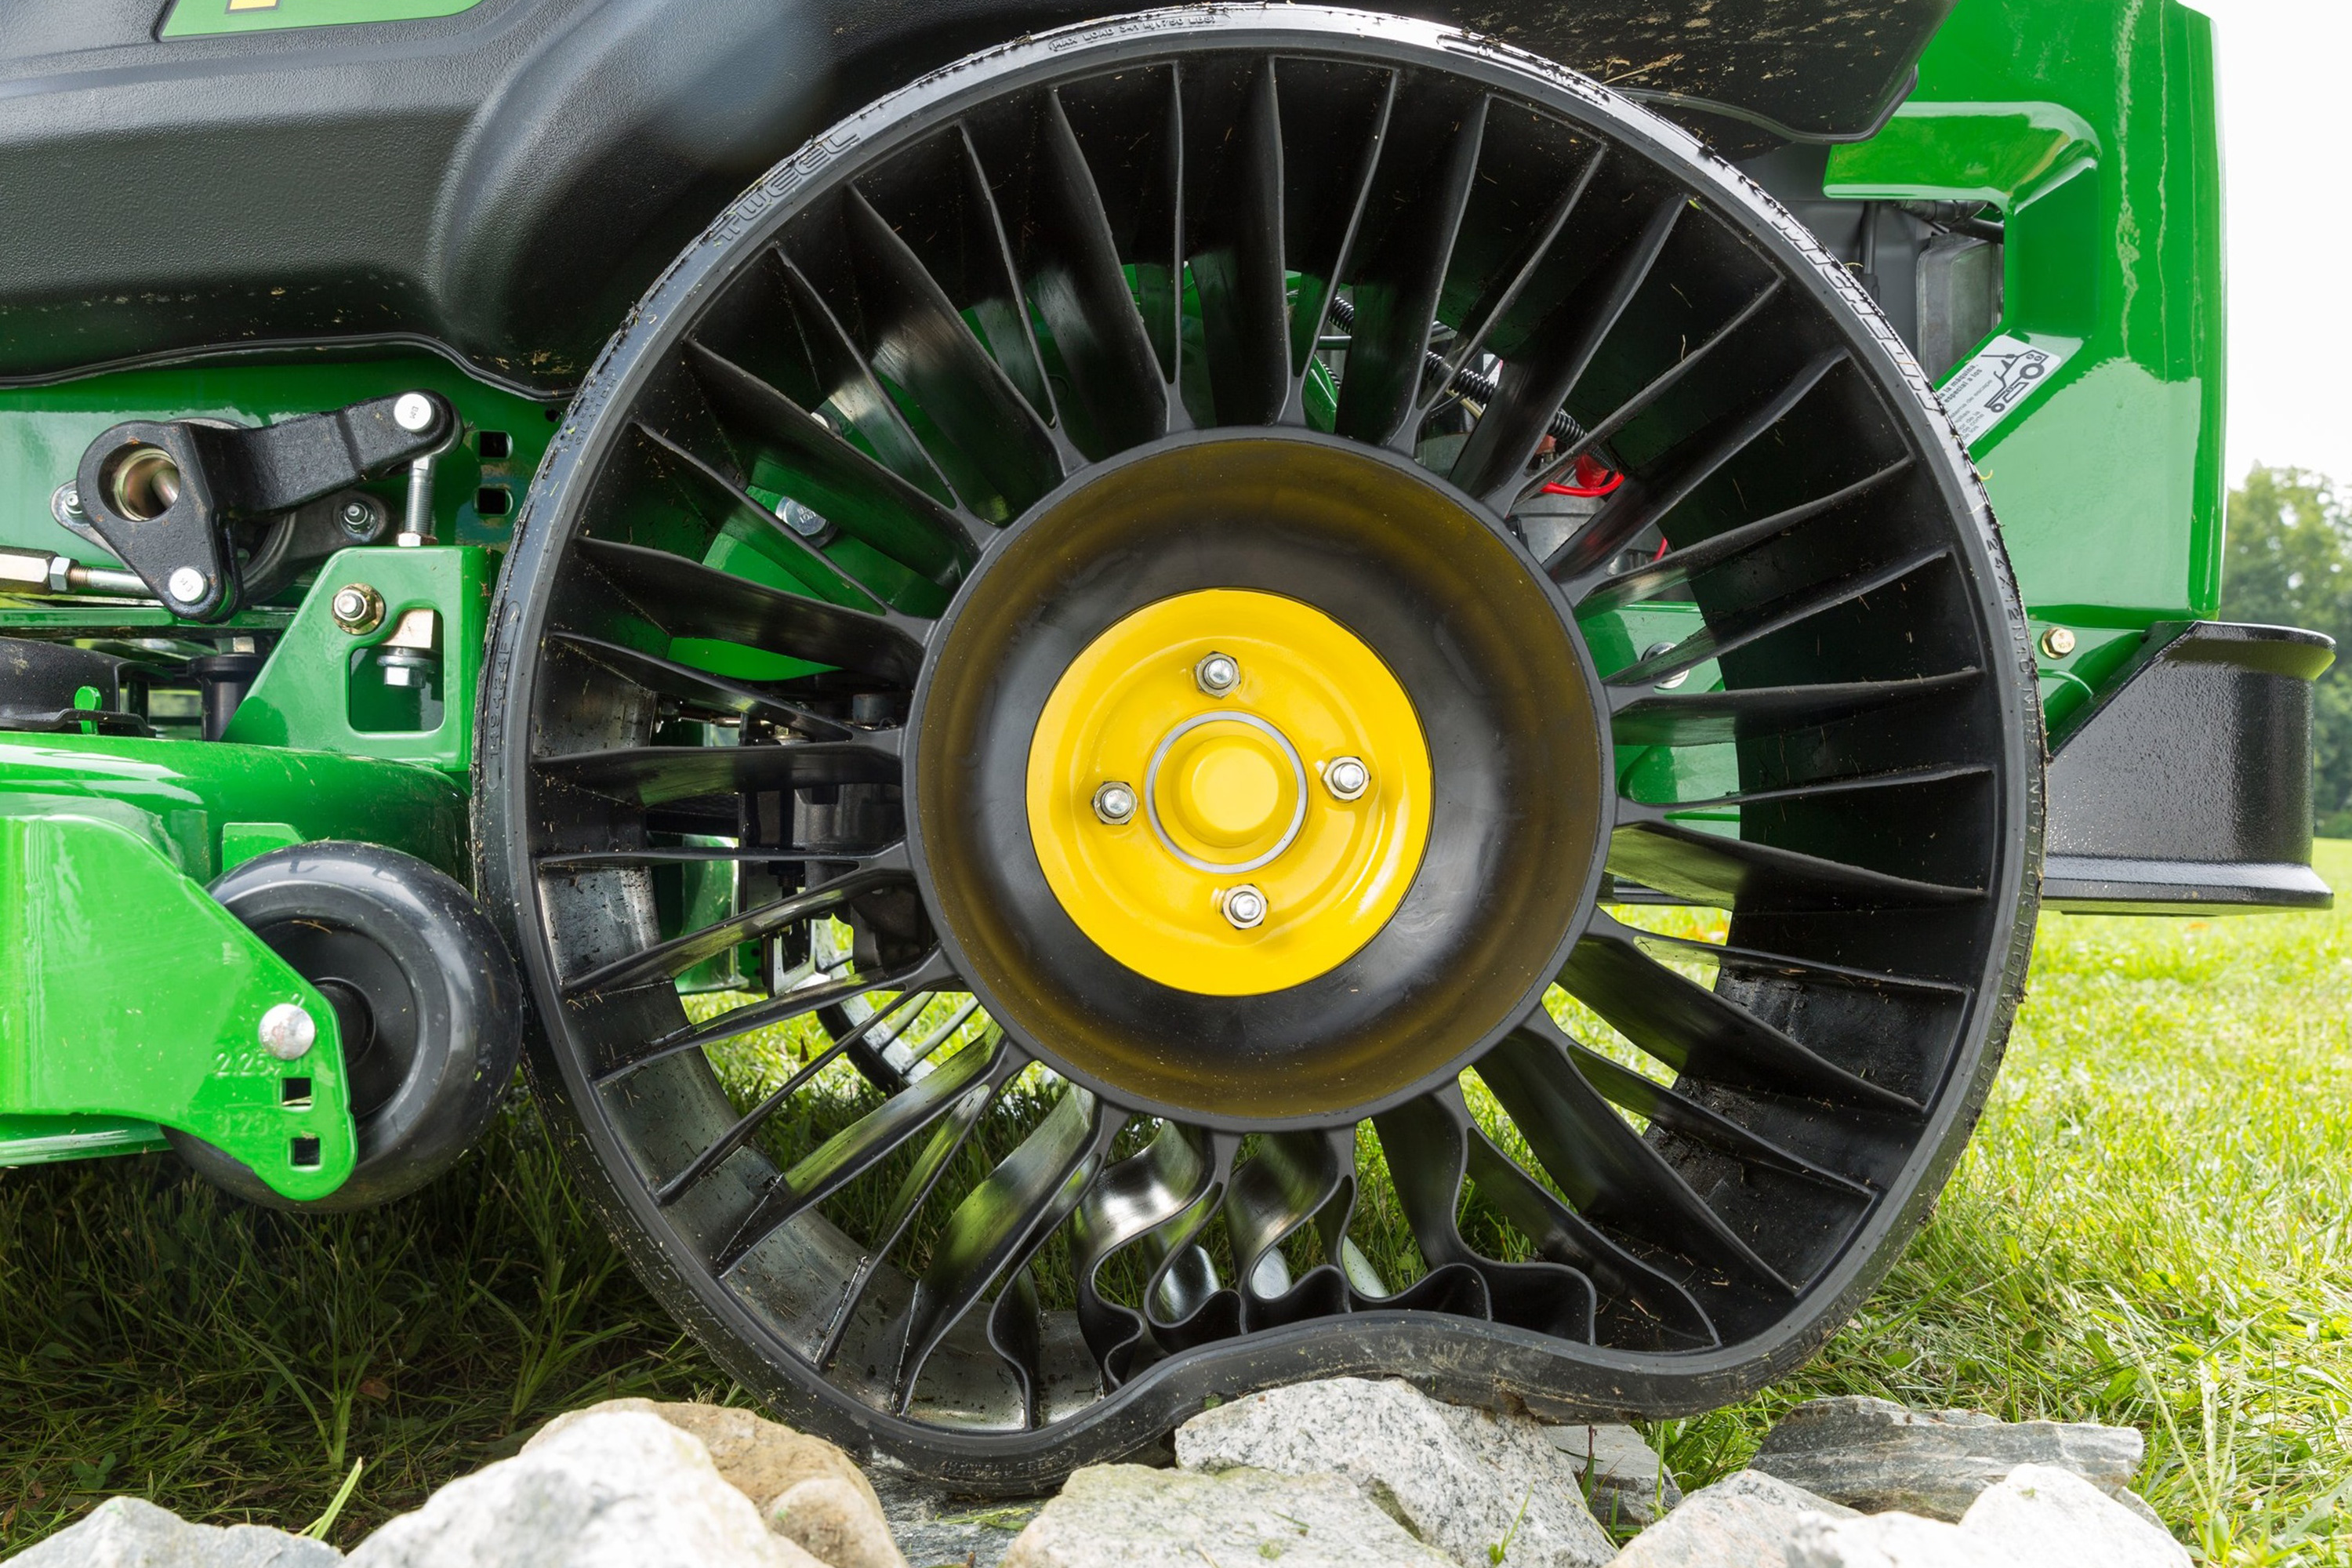 John Deere Tractor Tyre : John deere innovation revolutionary products from